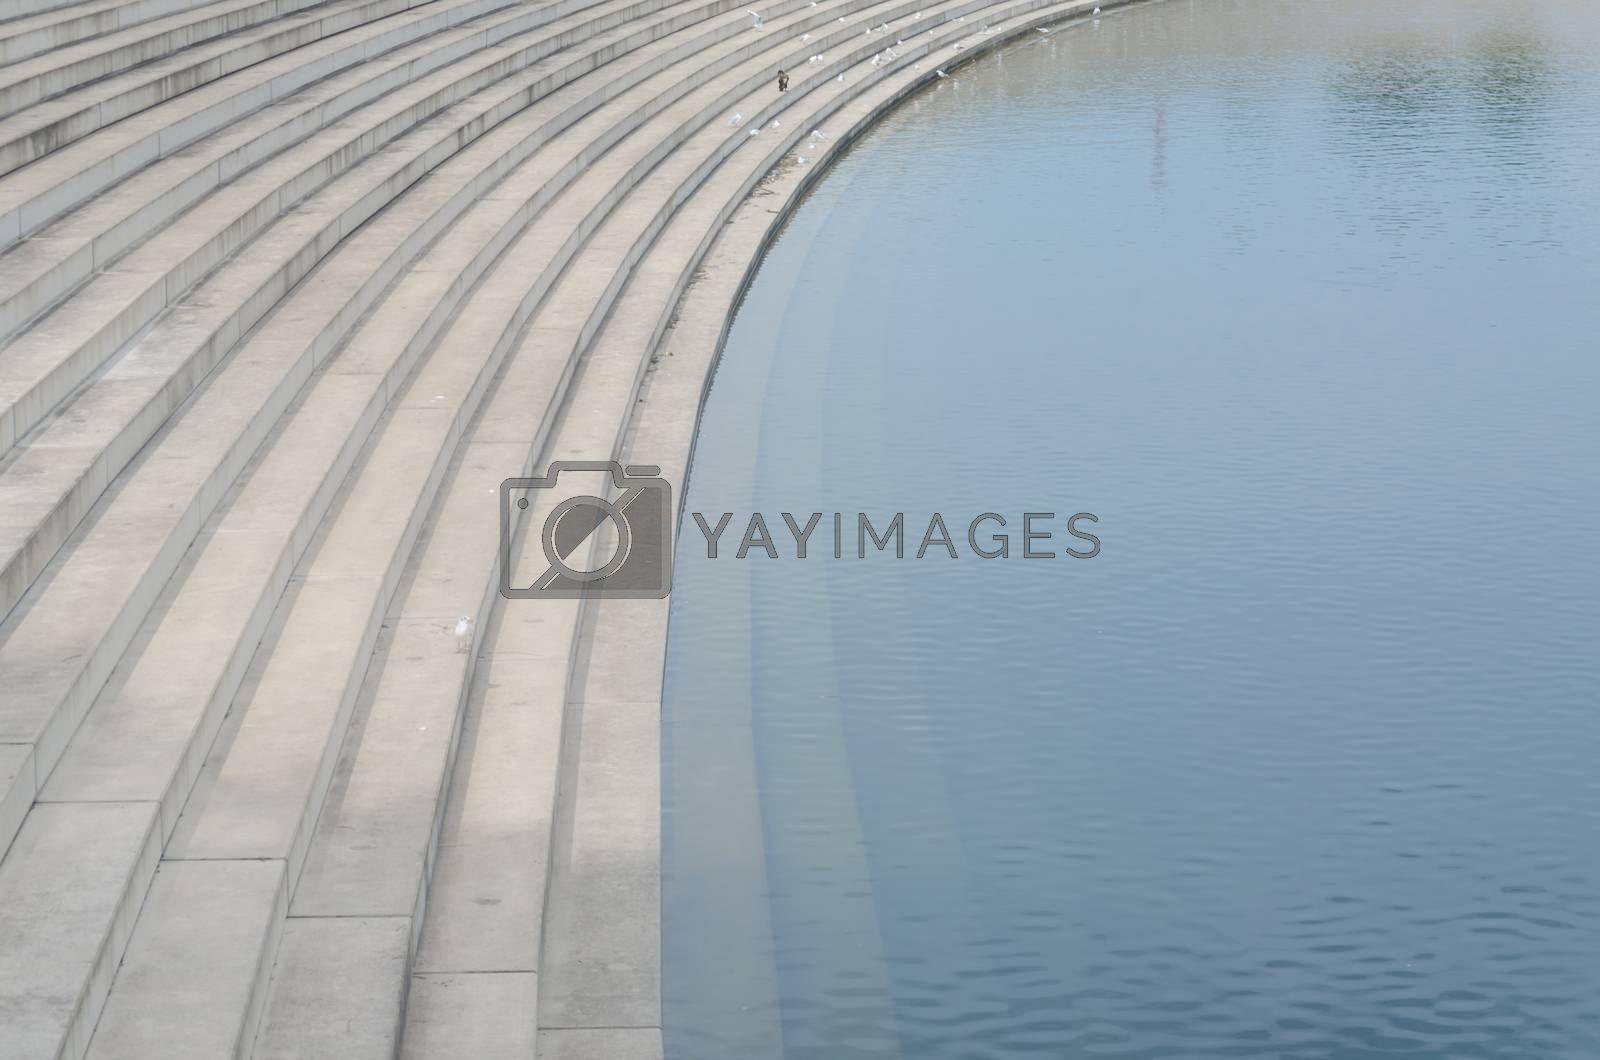 Royalty free image of Stairs, stand under water by JFsPic